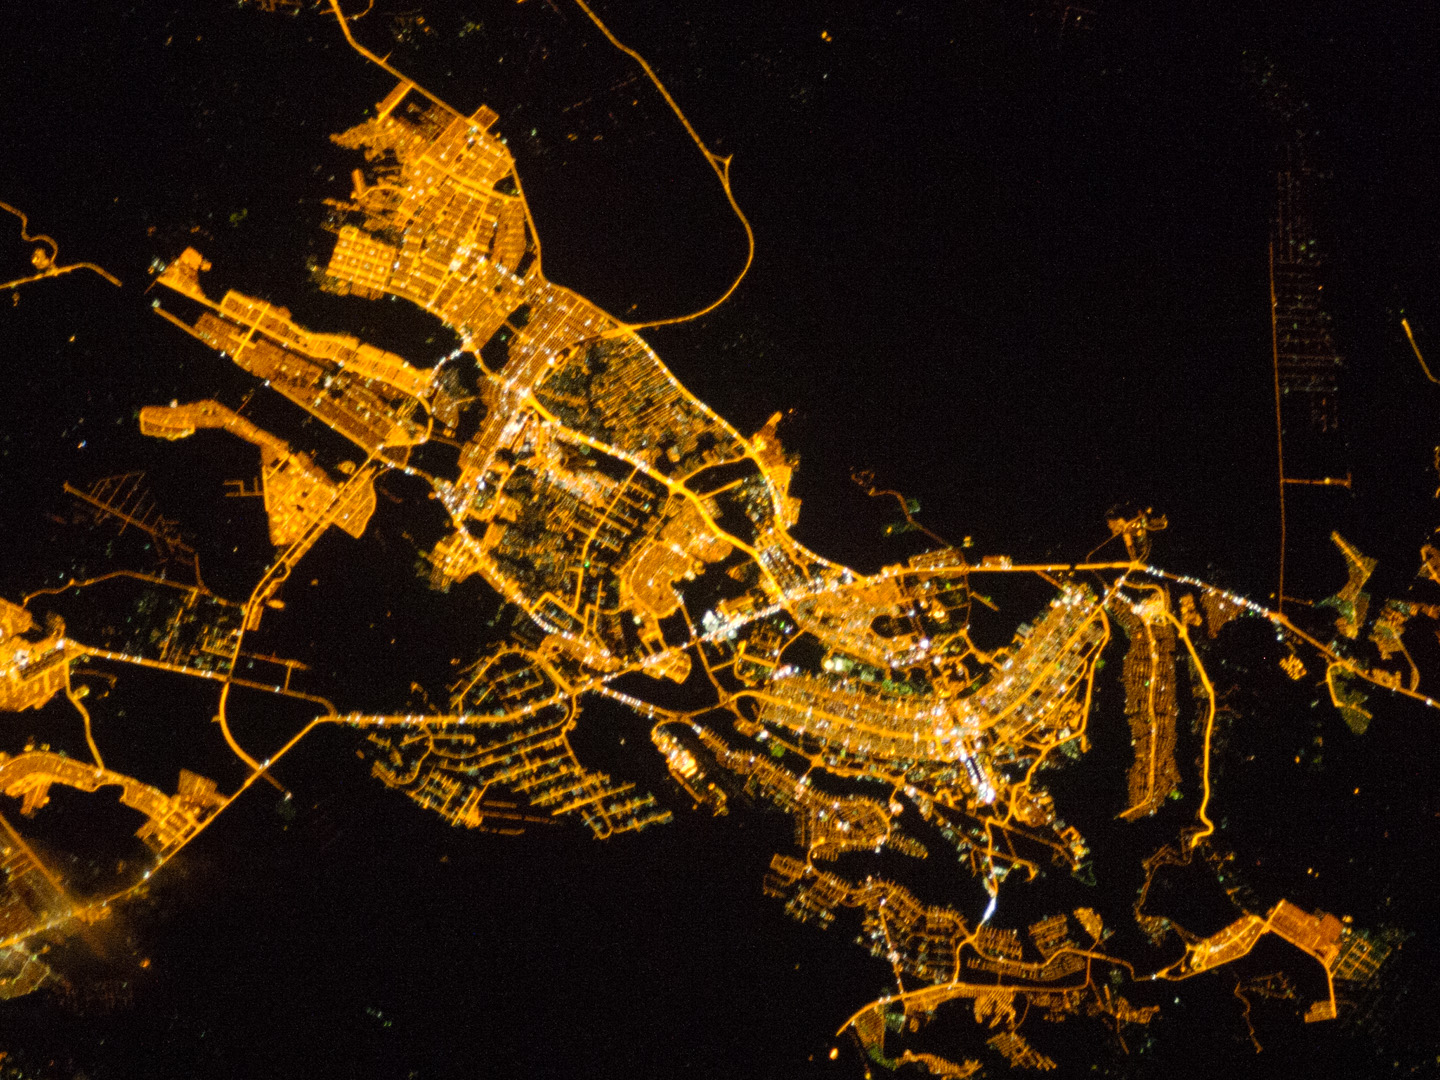 Today's Image of the Day comes thanks to the NASA Earth Observatory and features a look at the city of Brasília, Brazil at night.